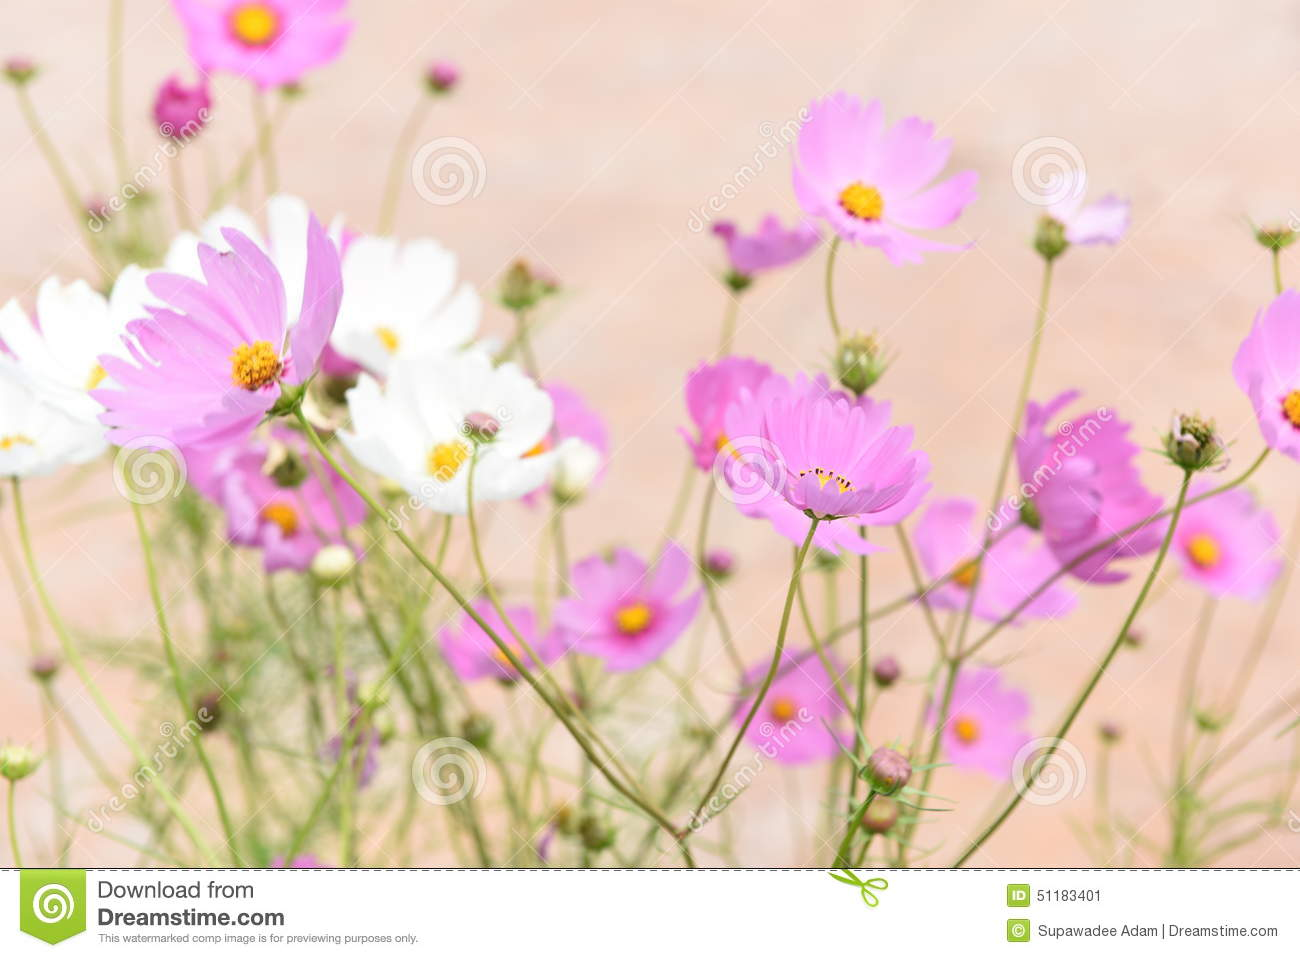 Pink and white cosmo flowers stock image image of full filed pink and white cosmo flowers mightylinksfo